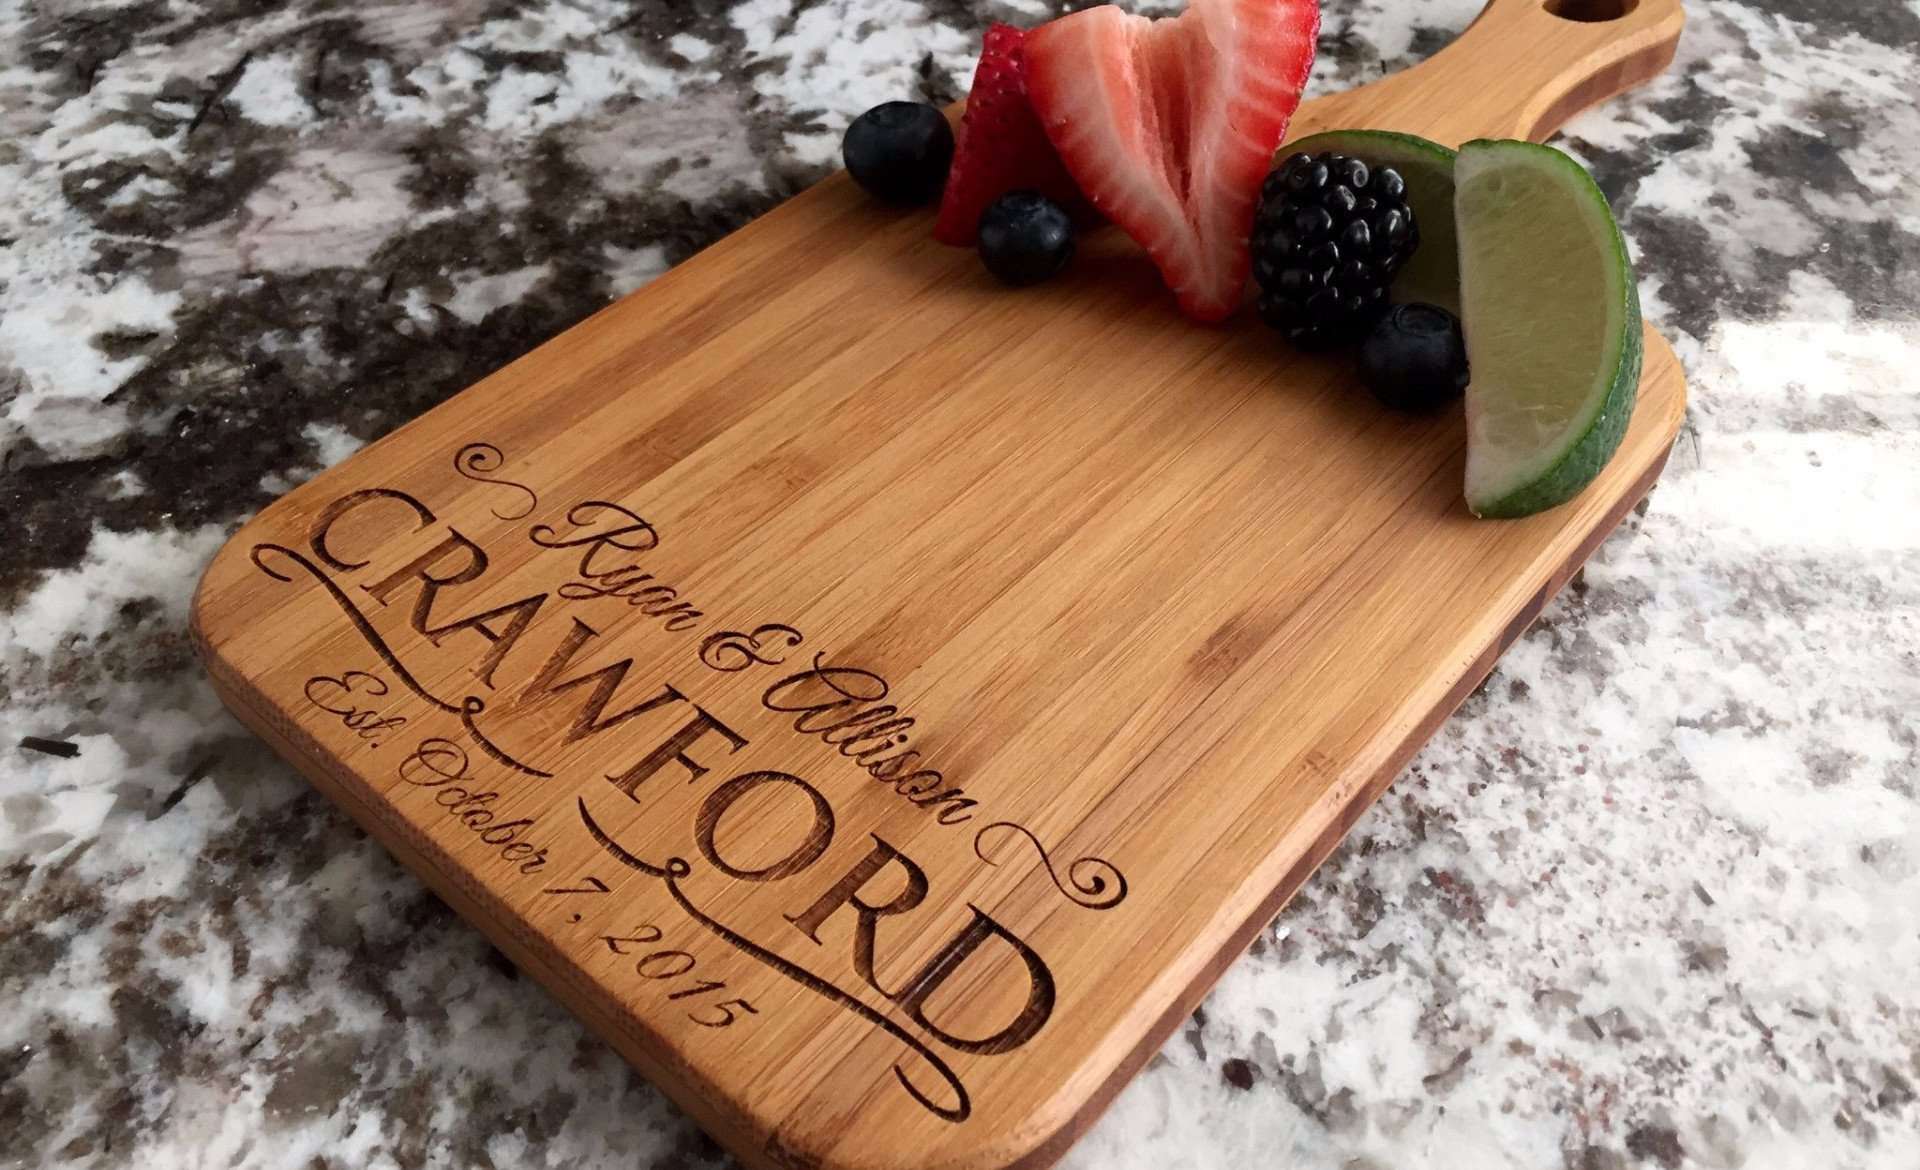 Personalized by Name Cutting Board for Kitchen - Wood Boards Housewarming & Wedding Gift (5 x 11 Bamboo Paddle Shaped, Crawford Design)